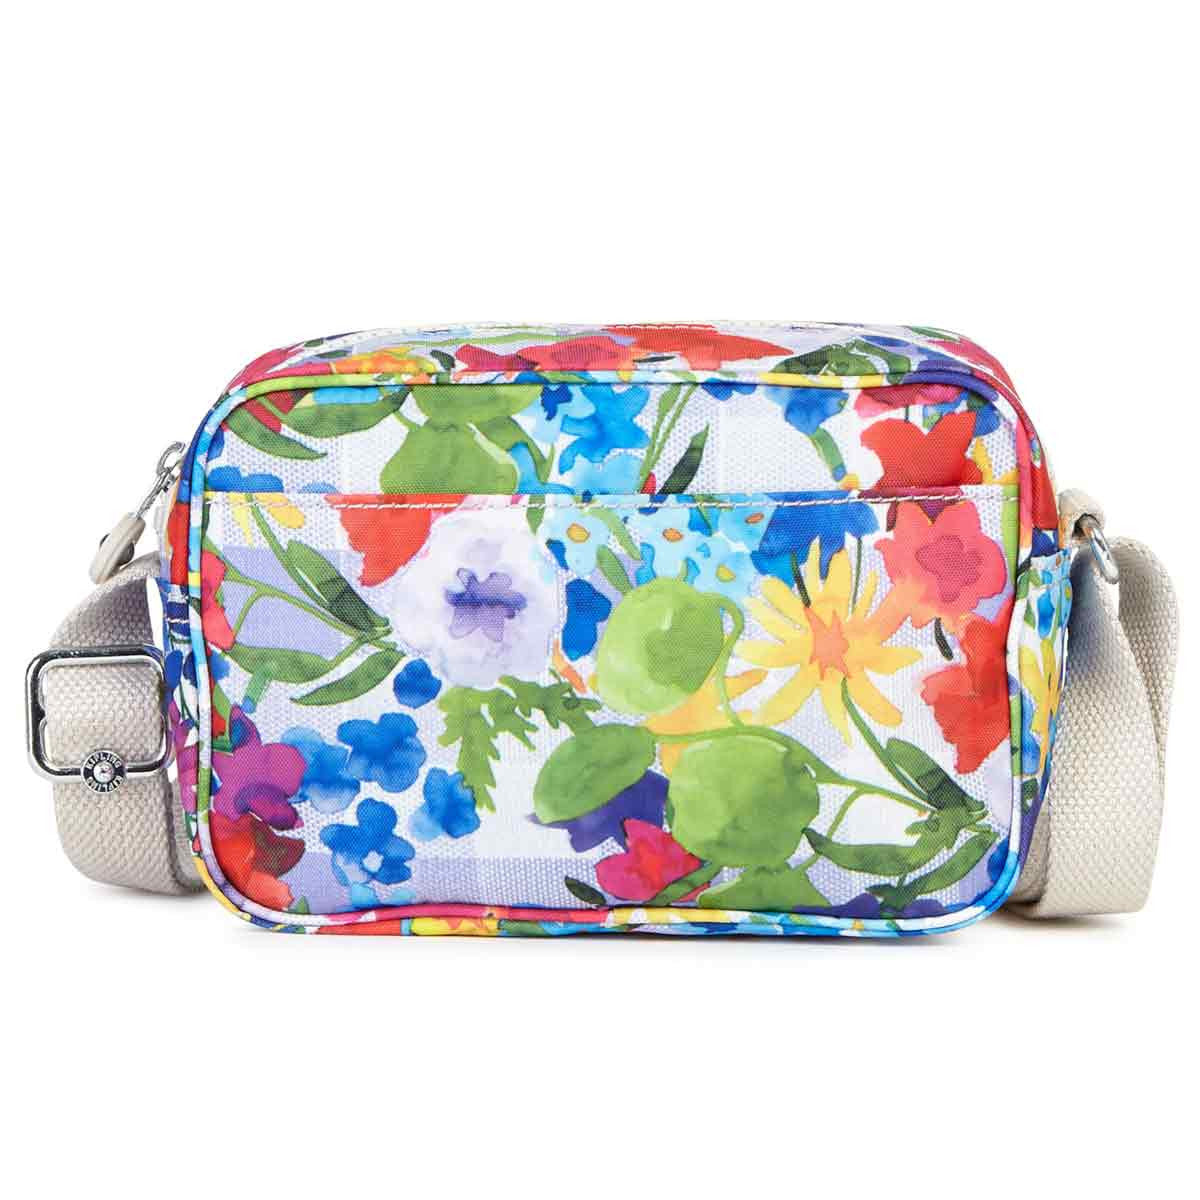 Kipling AC7761-943 Women's Dee II Picnic in the Park Printed Nylon Crossbody Handbag